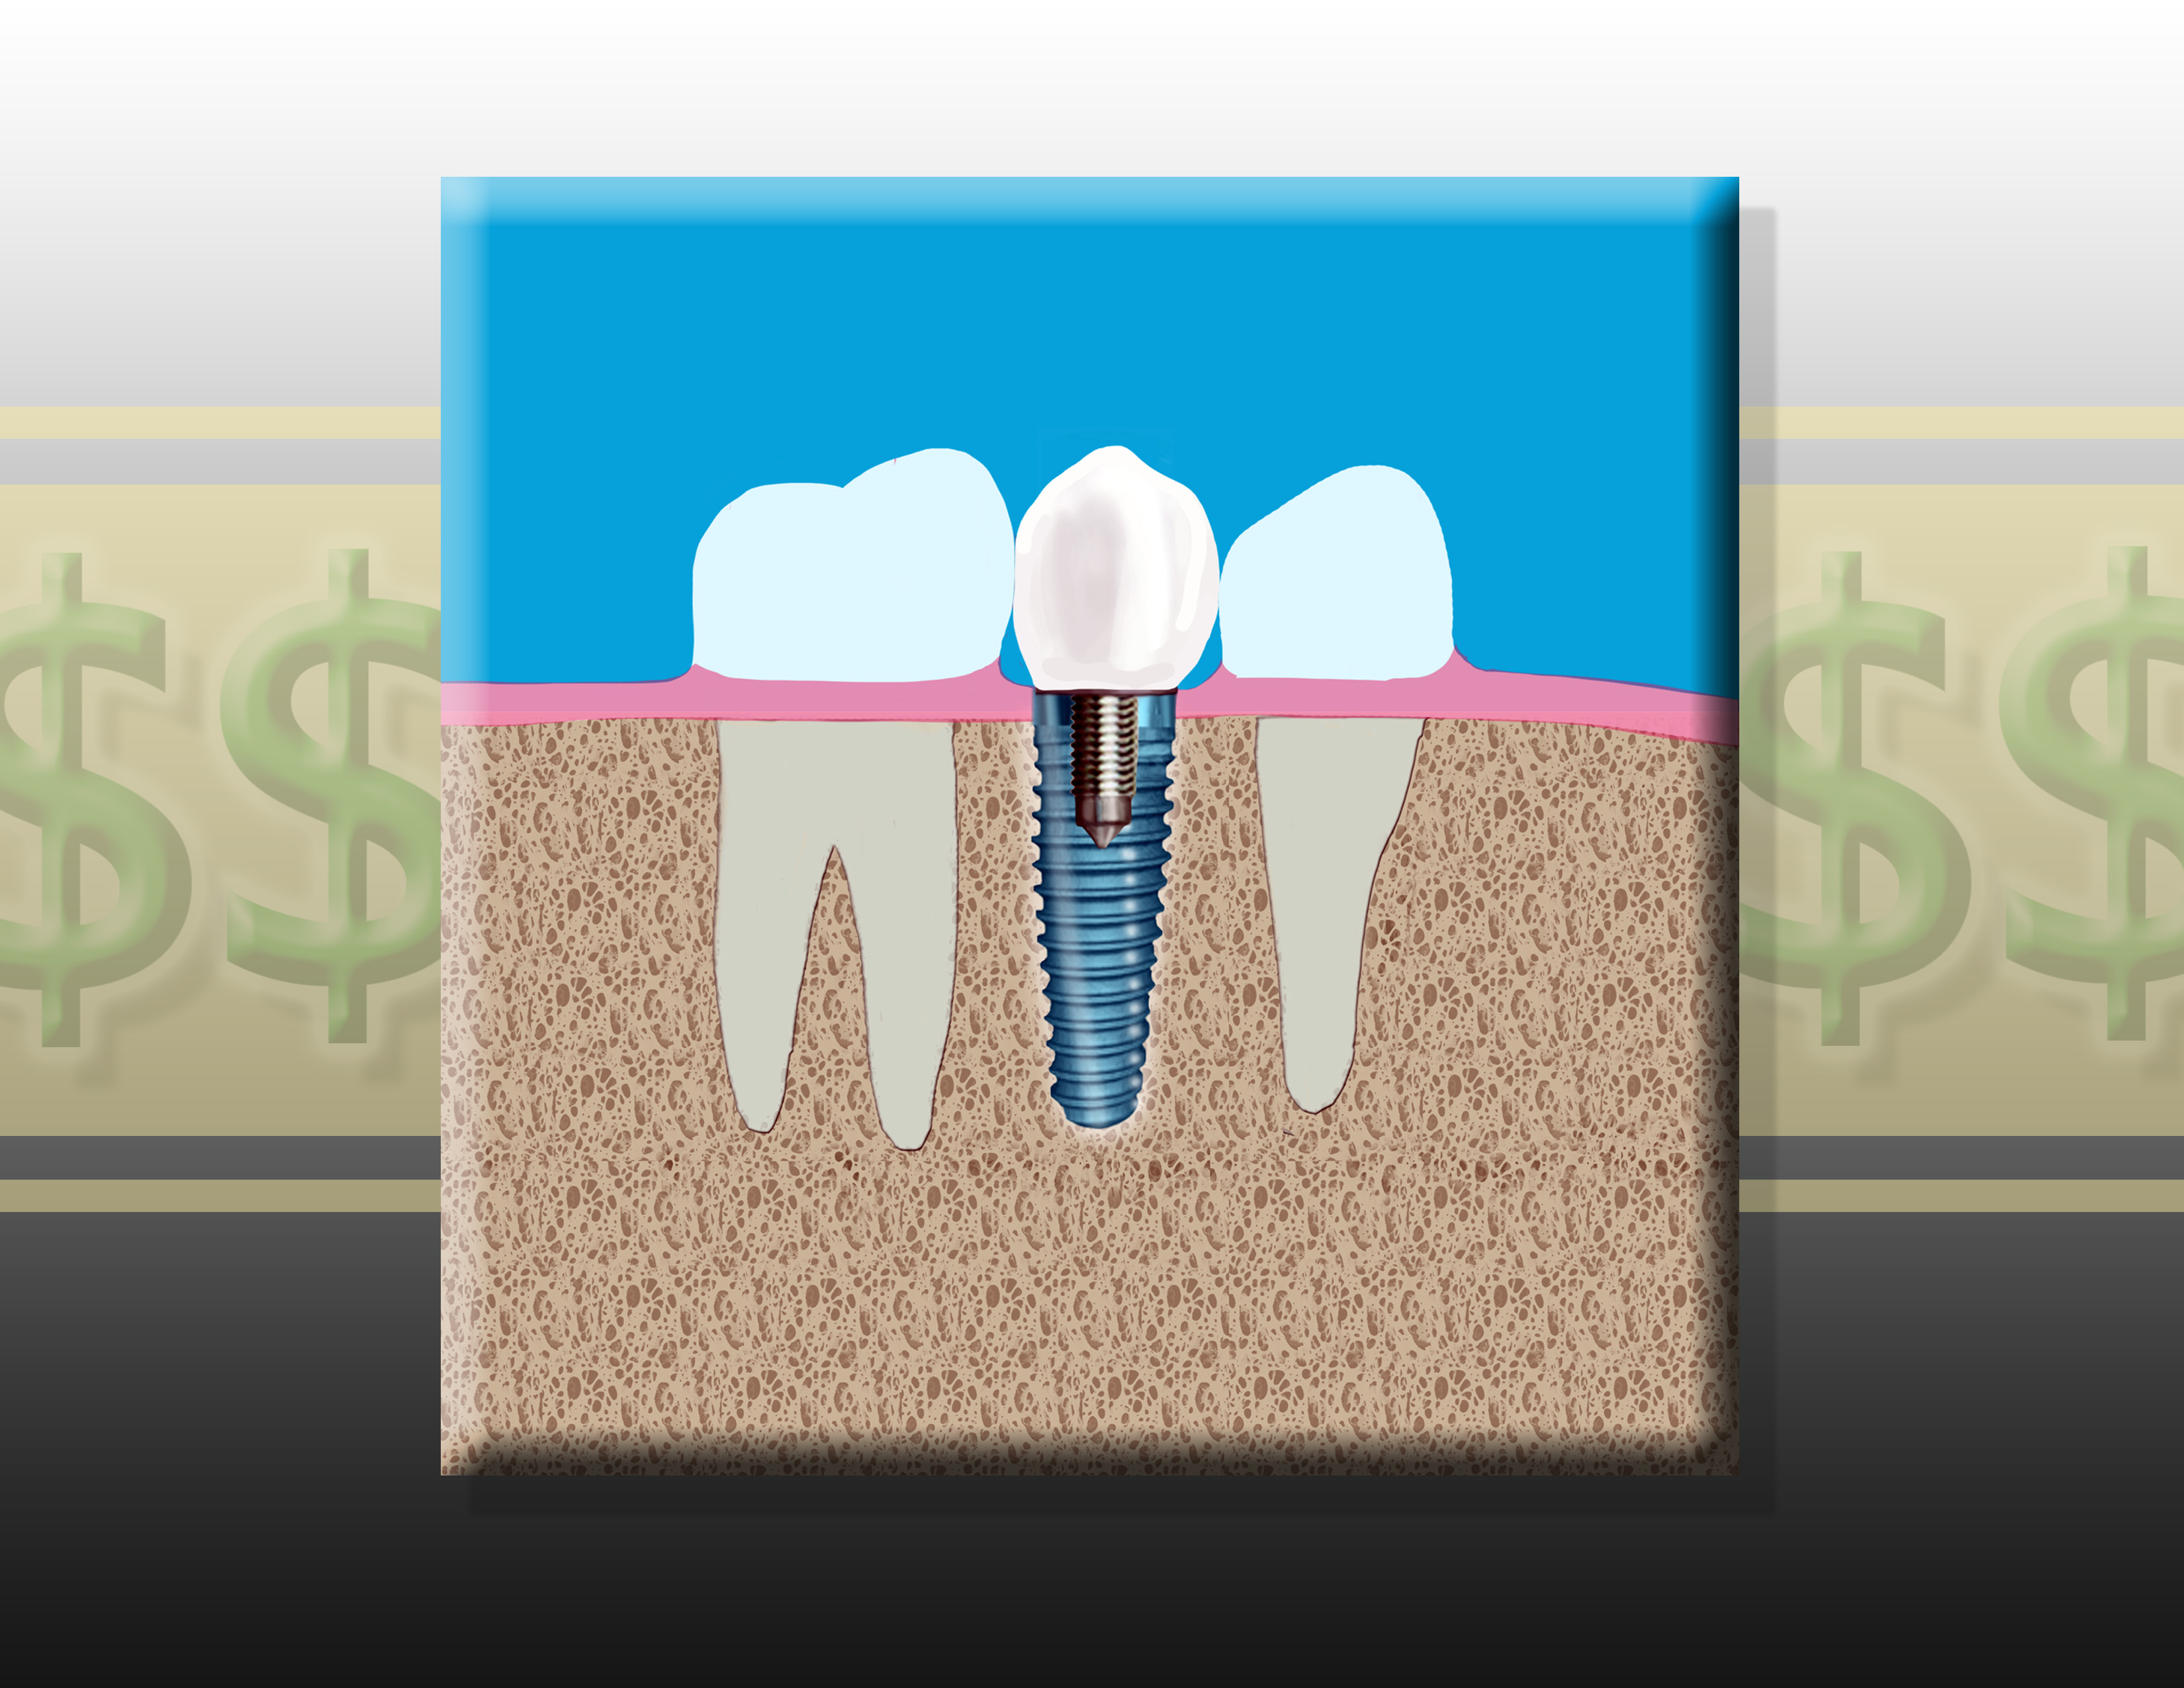 Discount Dental Implants